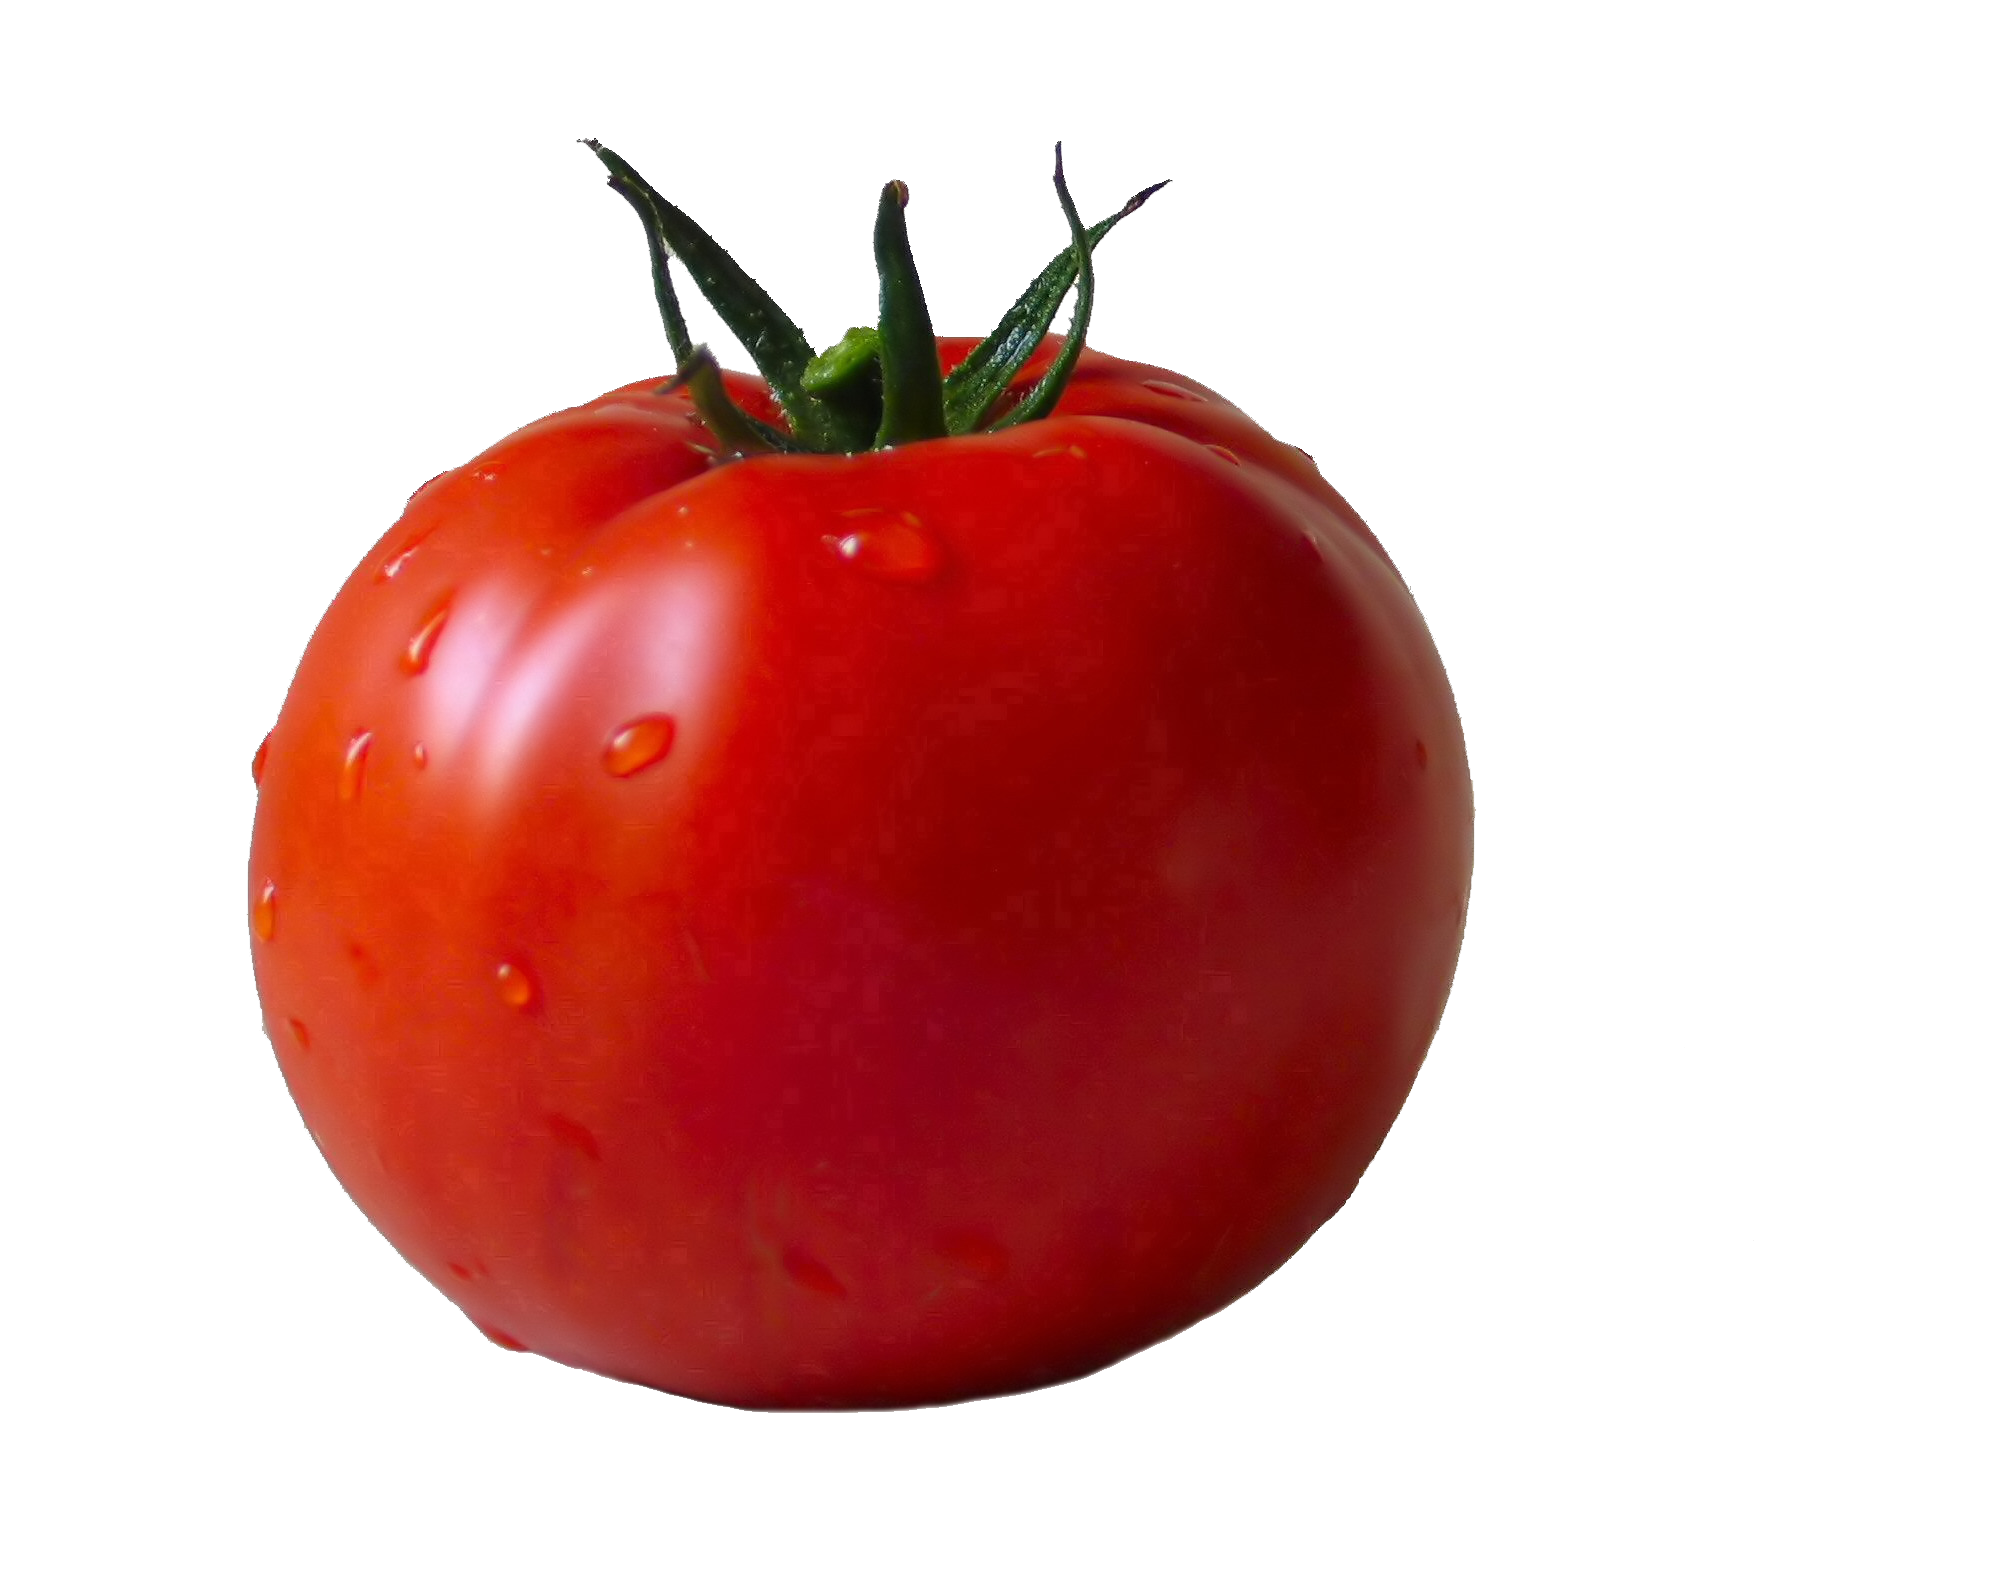 Free PNG Tomatoes - 57199